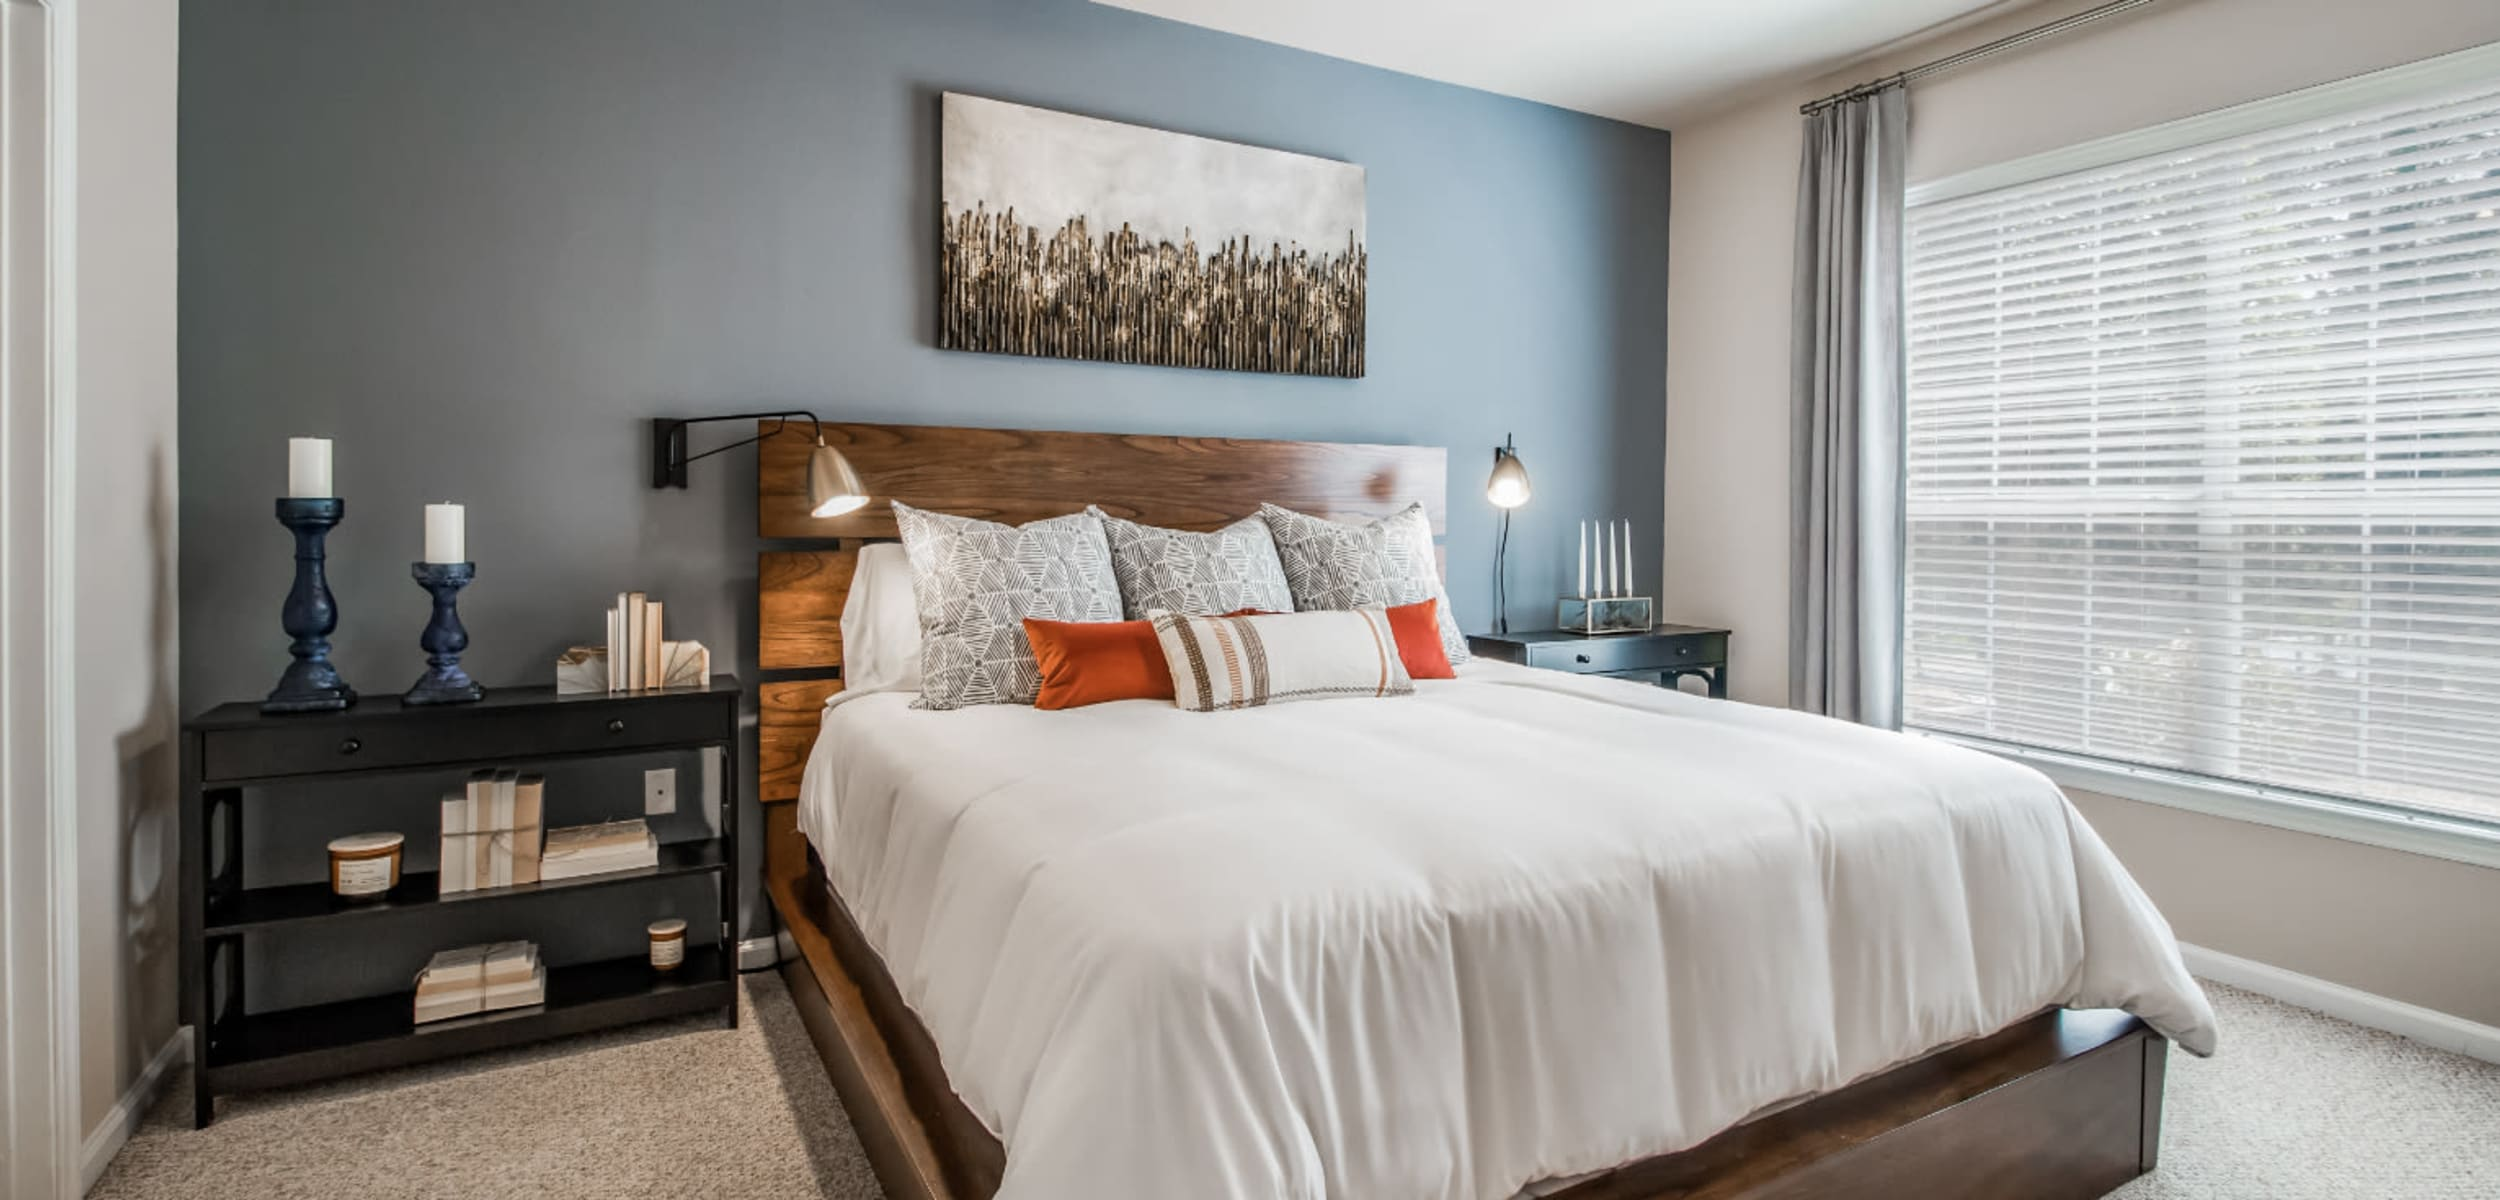 Carpeted bedroom with big window at Marquis at Carmel Commons in Charlotte, North Carolina